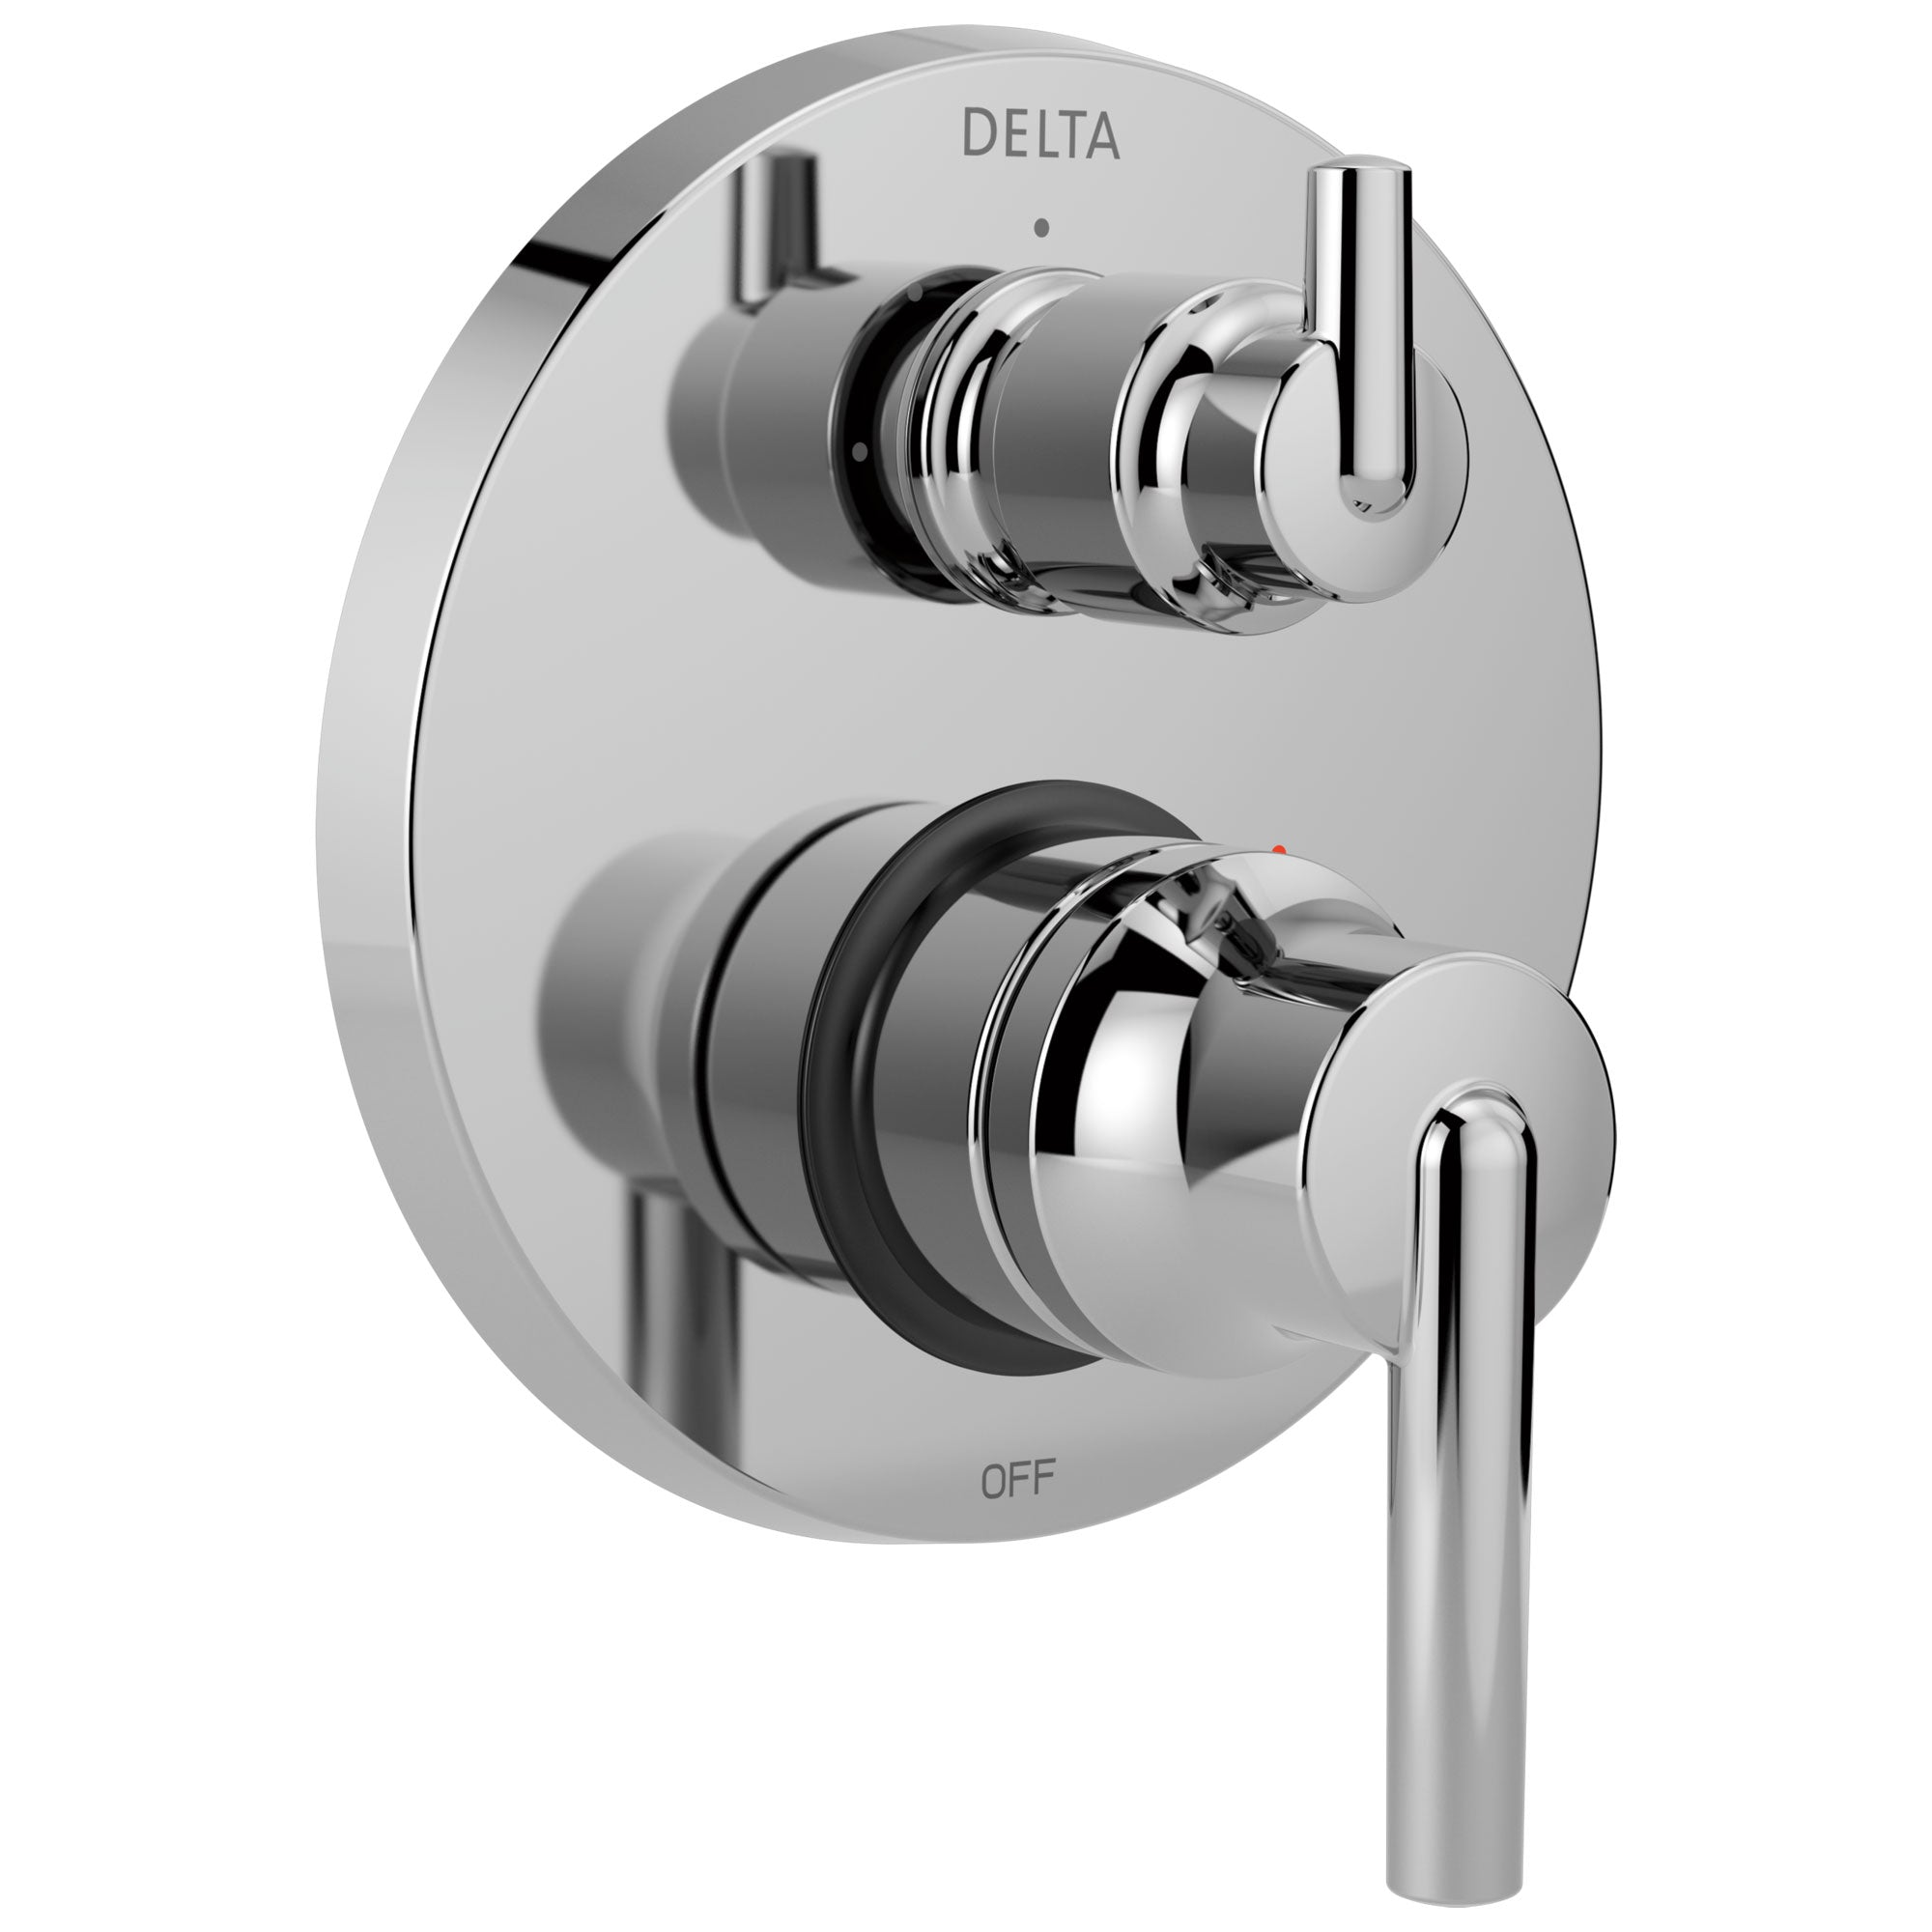 Delta Trinsic Collection Chrome Monitor 14 Shower Faucet Valve Trim Control Handle with 3-Setting Integrated Diverter (Requires Valve) DT24859